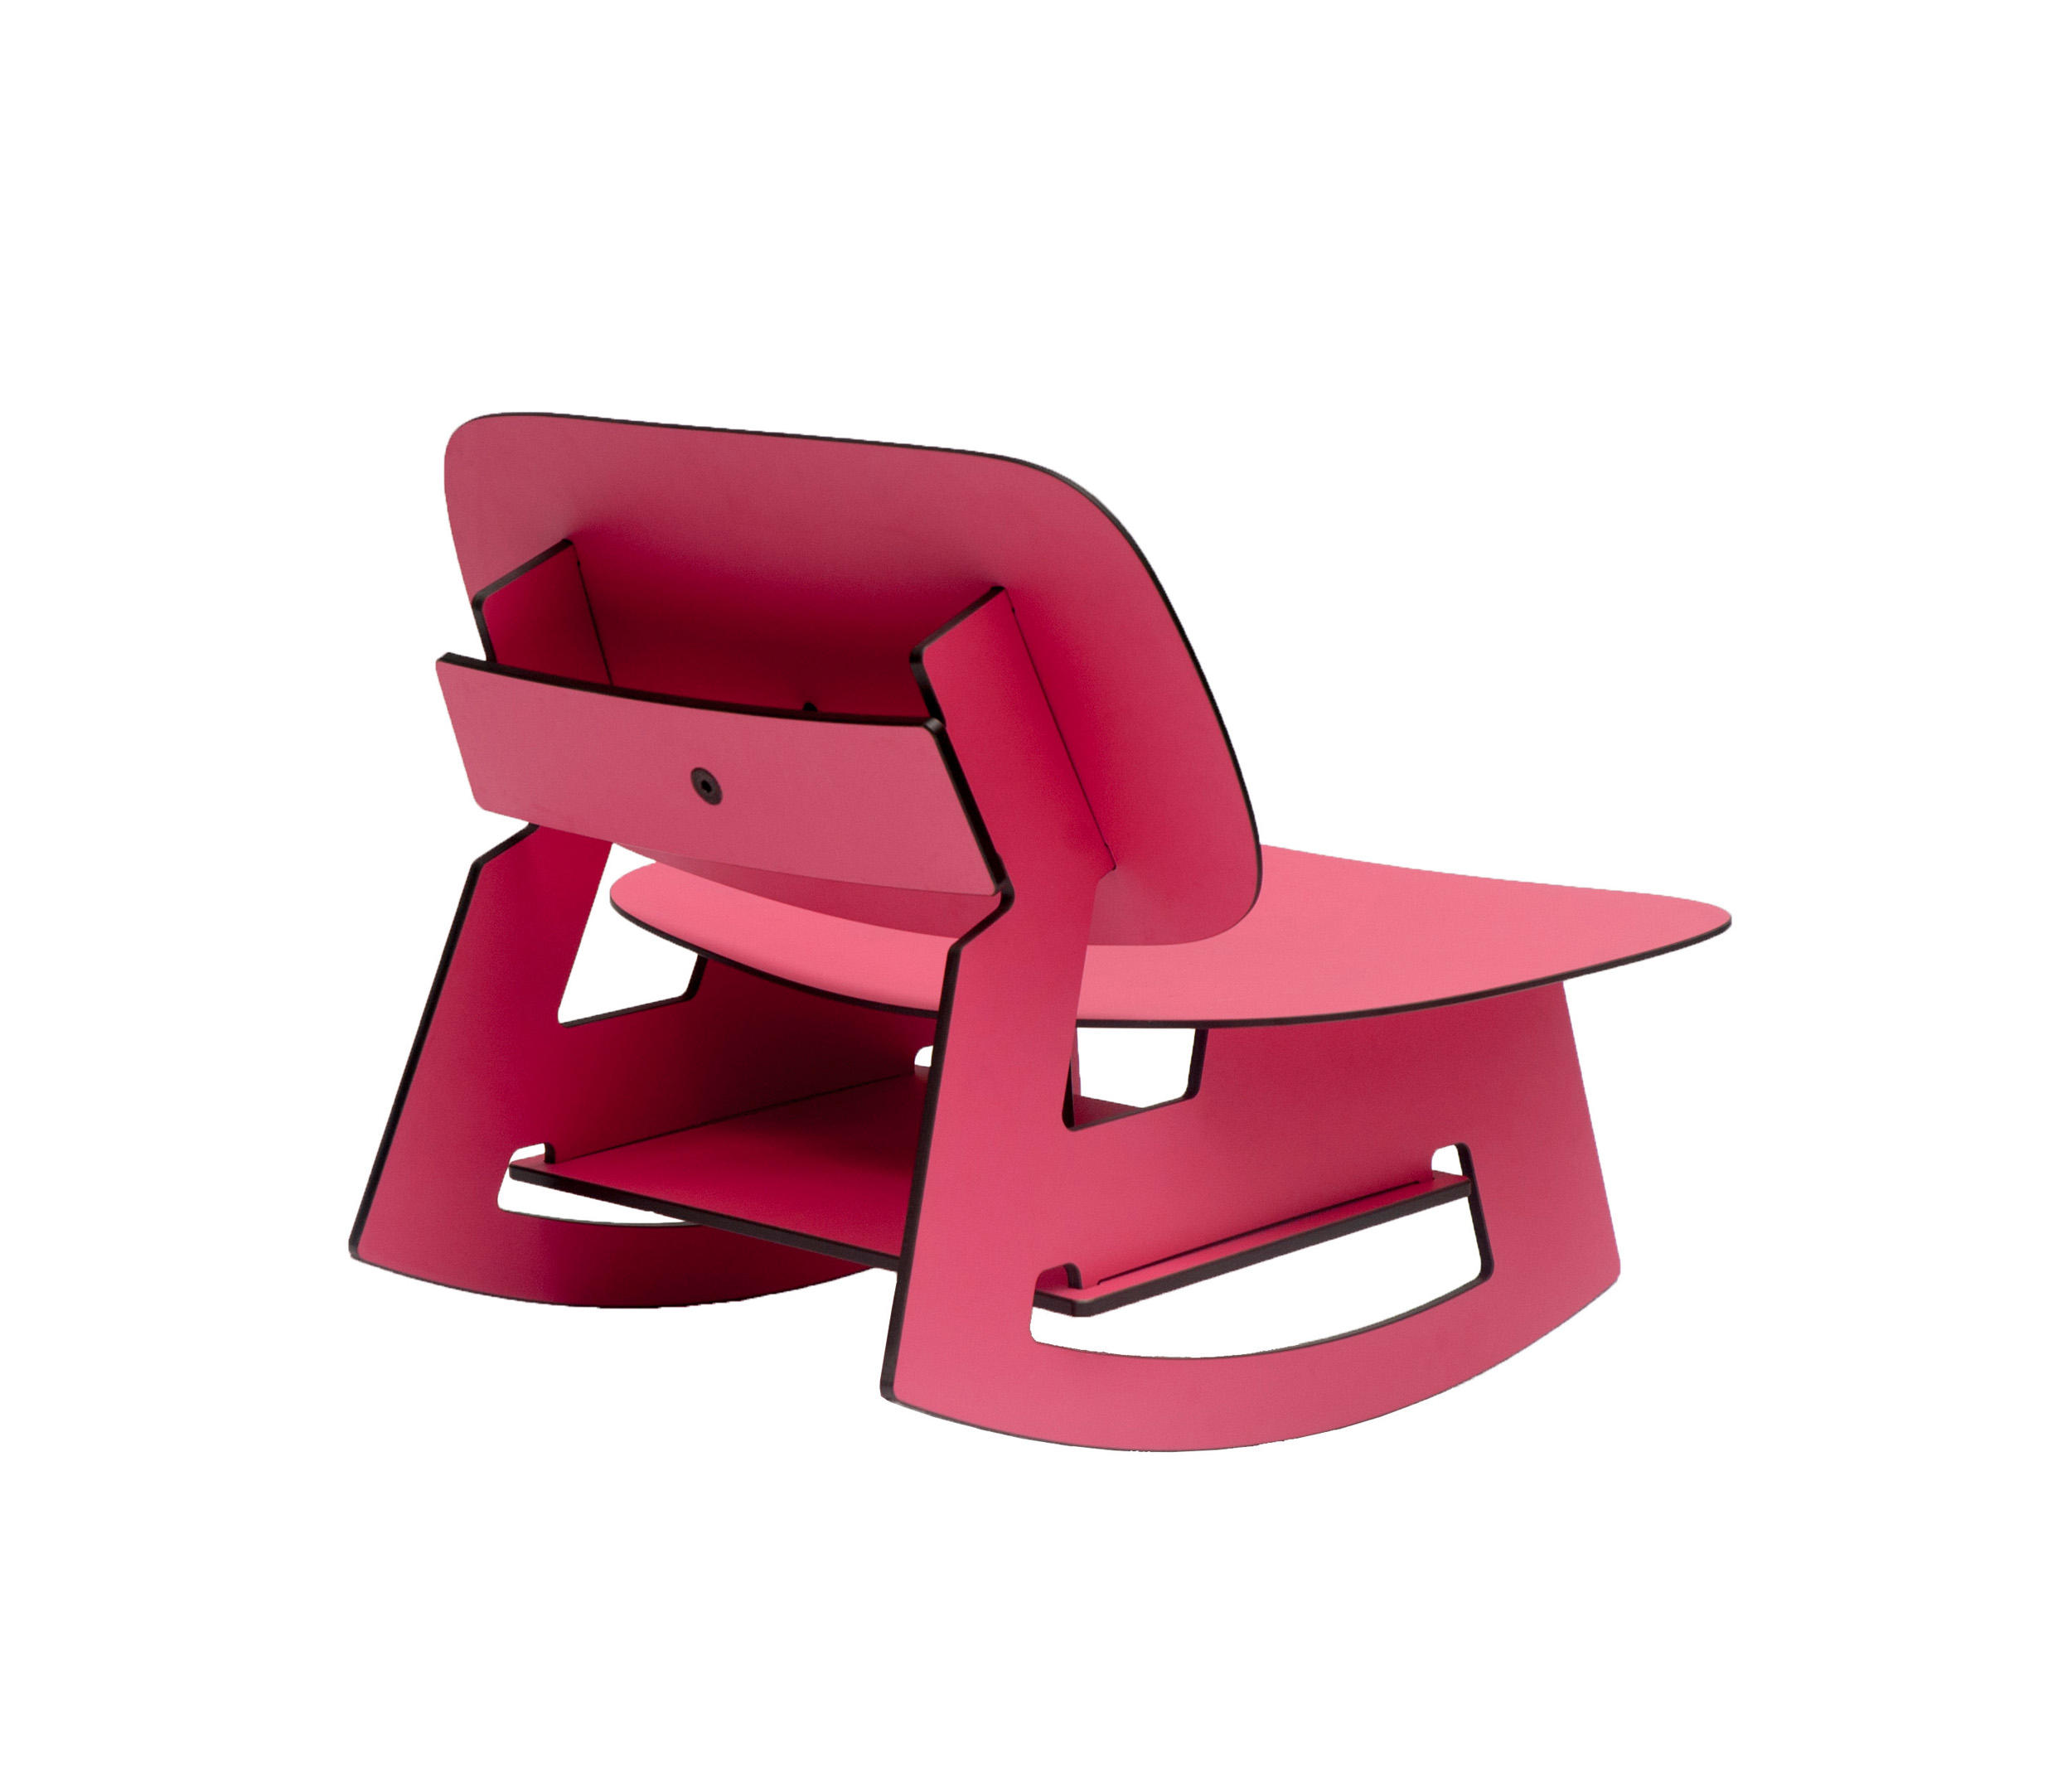 LOBBYIST ROCKER FOR KIDS ROCKING CHAIR Kids chairs from pliet